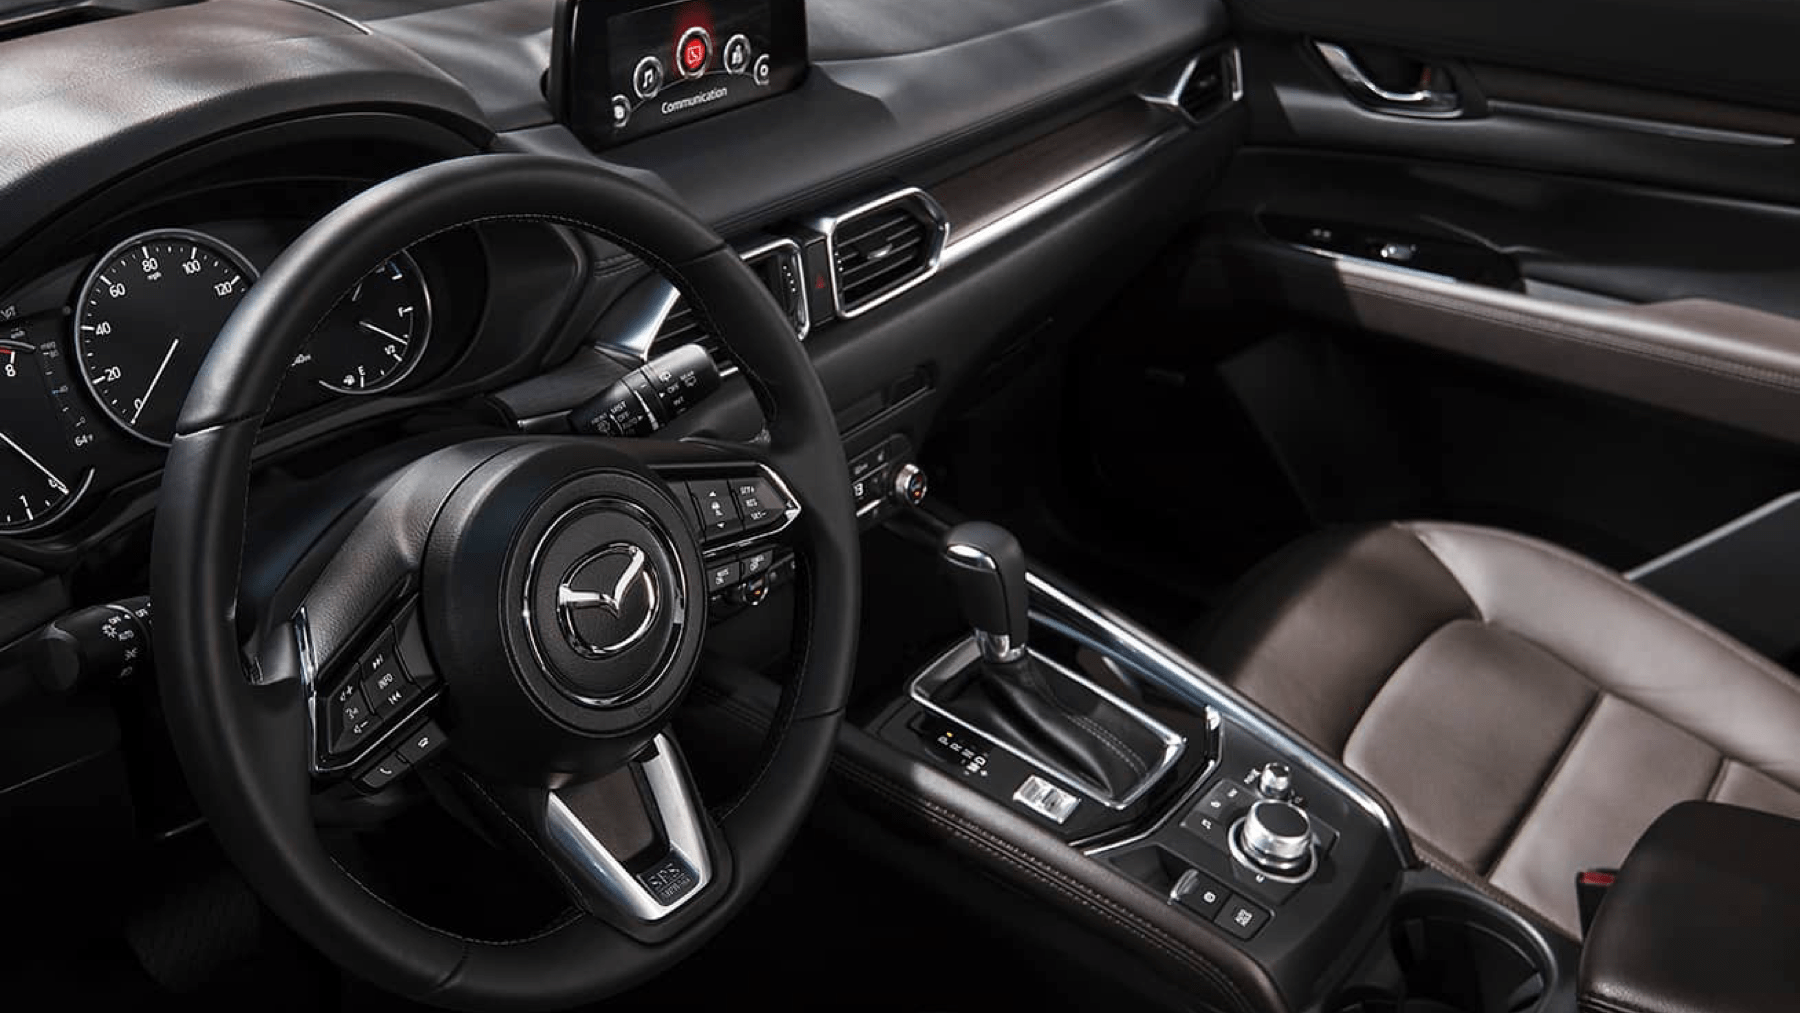 interior view of steering wheel Mazda CX-5